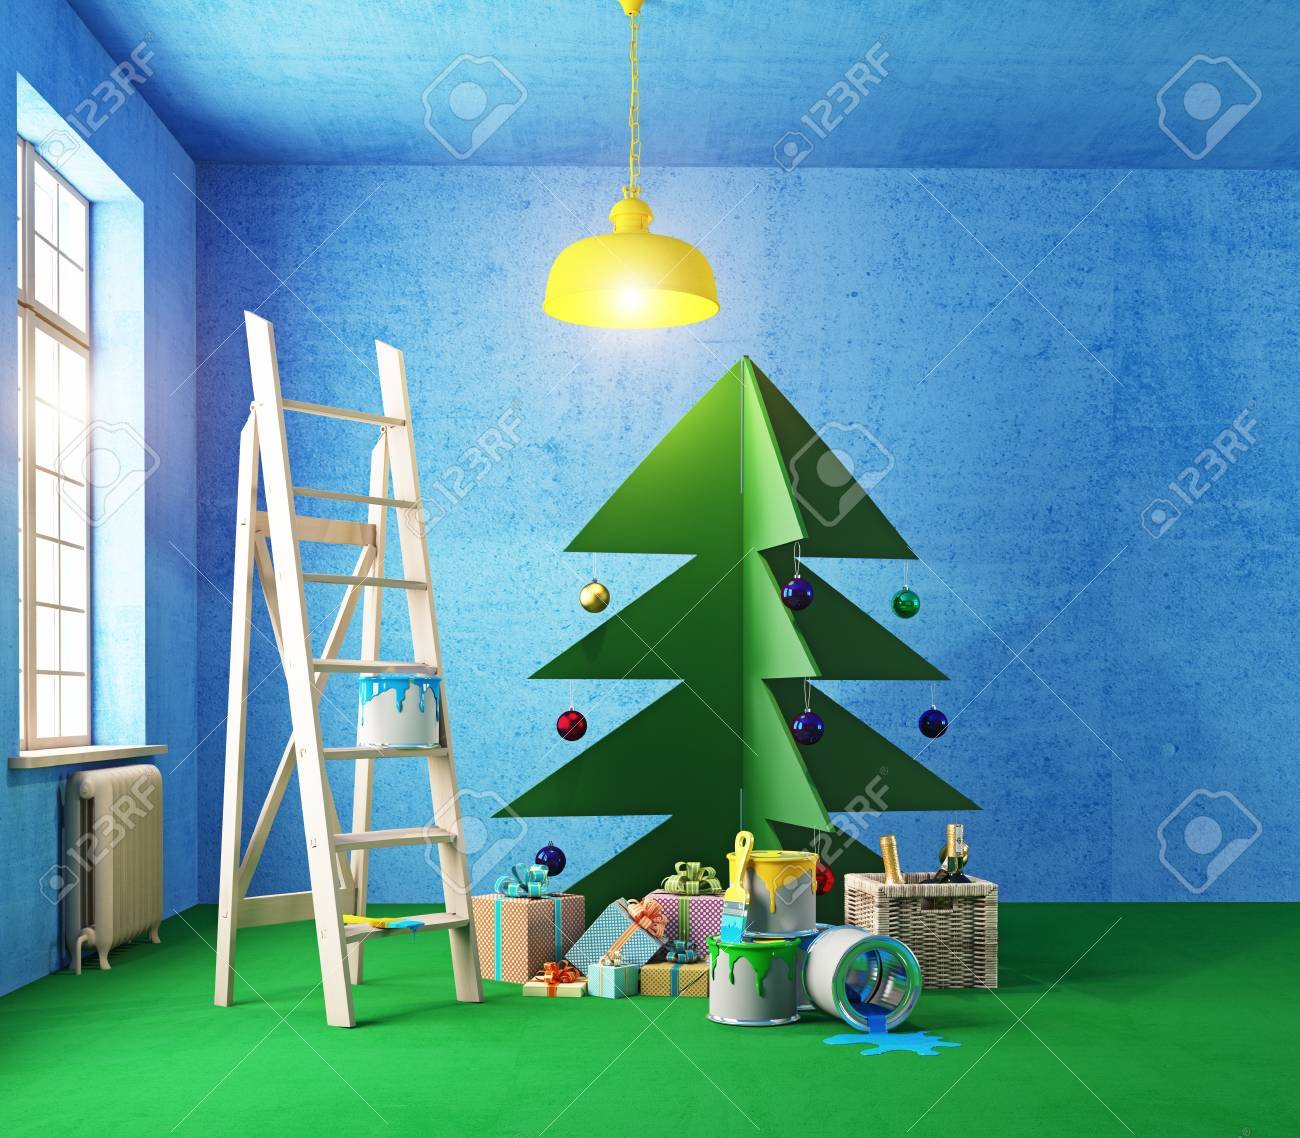 Plywood Christmas Tree Interior Nature Colors Room Painting Stock Photo Picture And Royalty Free Image Image 51589420